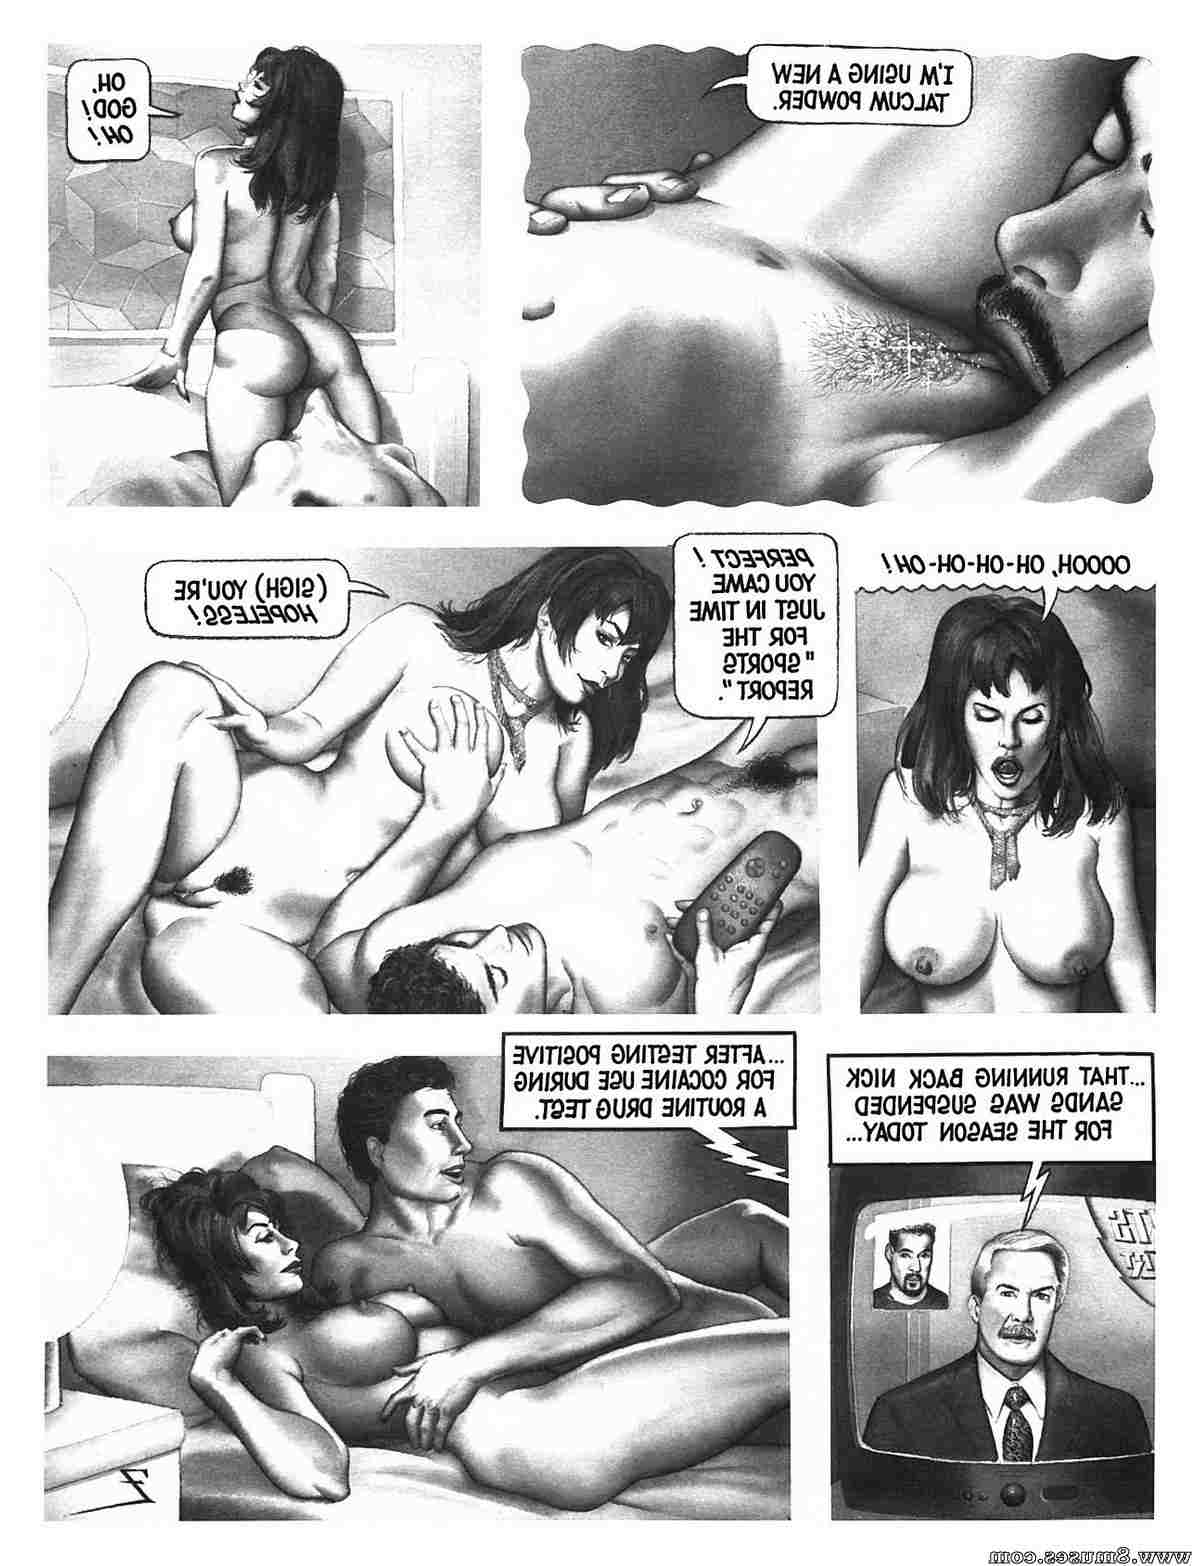 Amerotica-Comics/Blind-Squirrel Blind_Squirrel__8muses_-_Sex_and_Porn_Comics_48.jpg